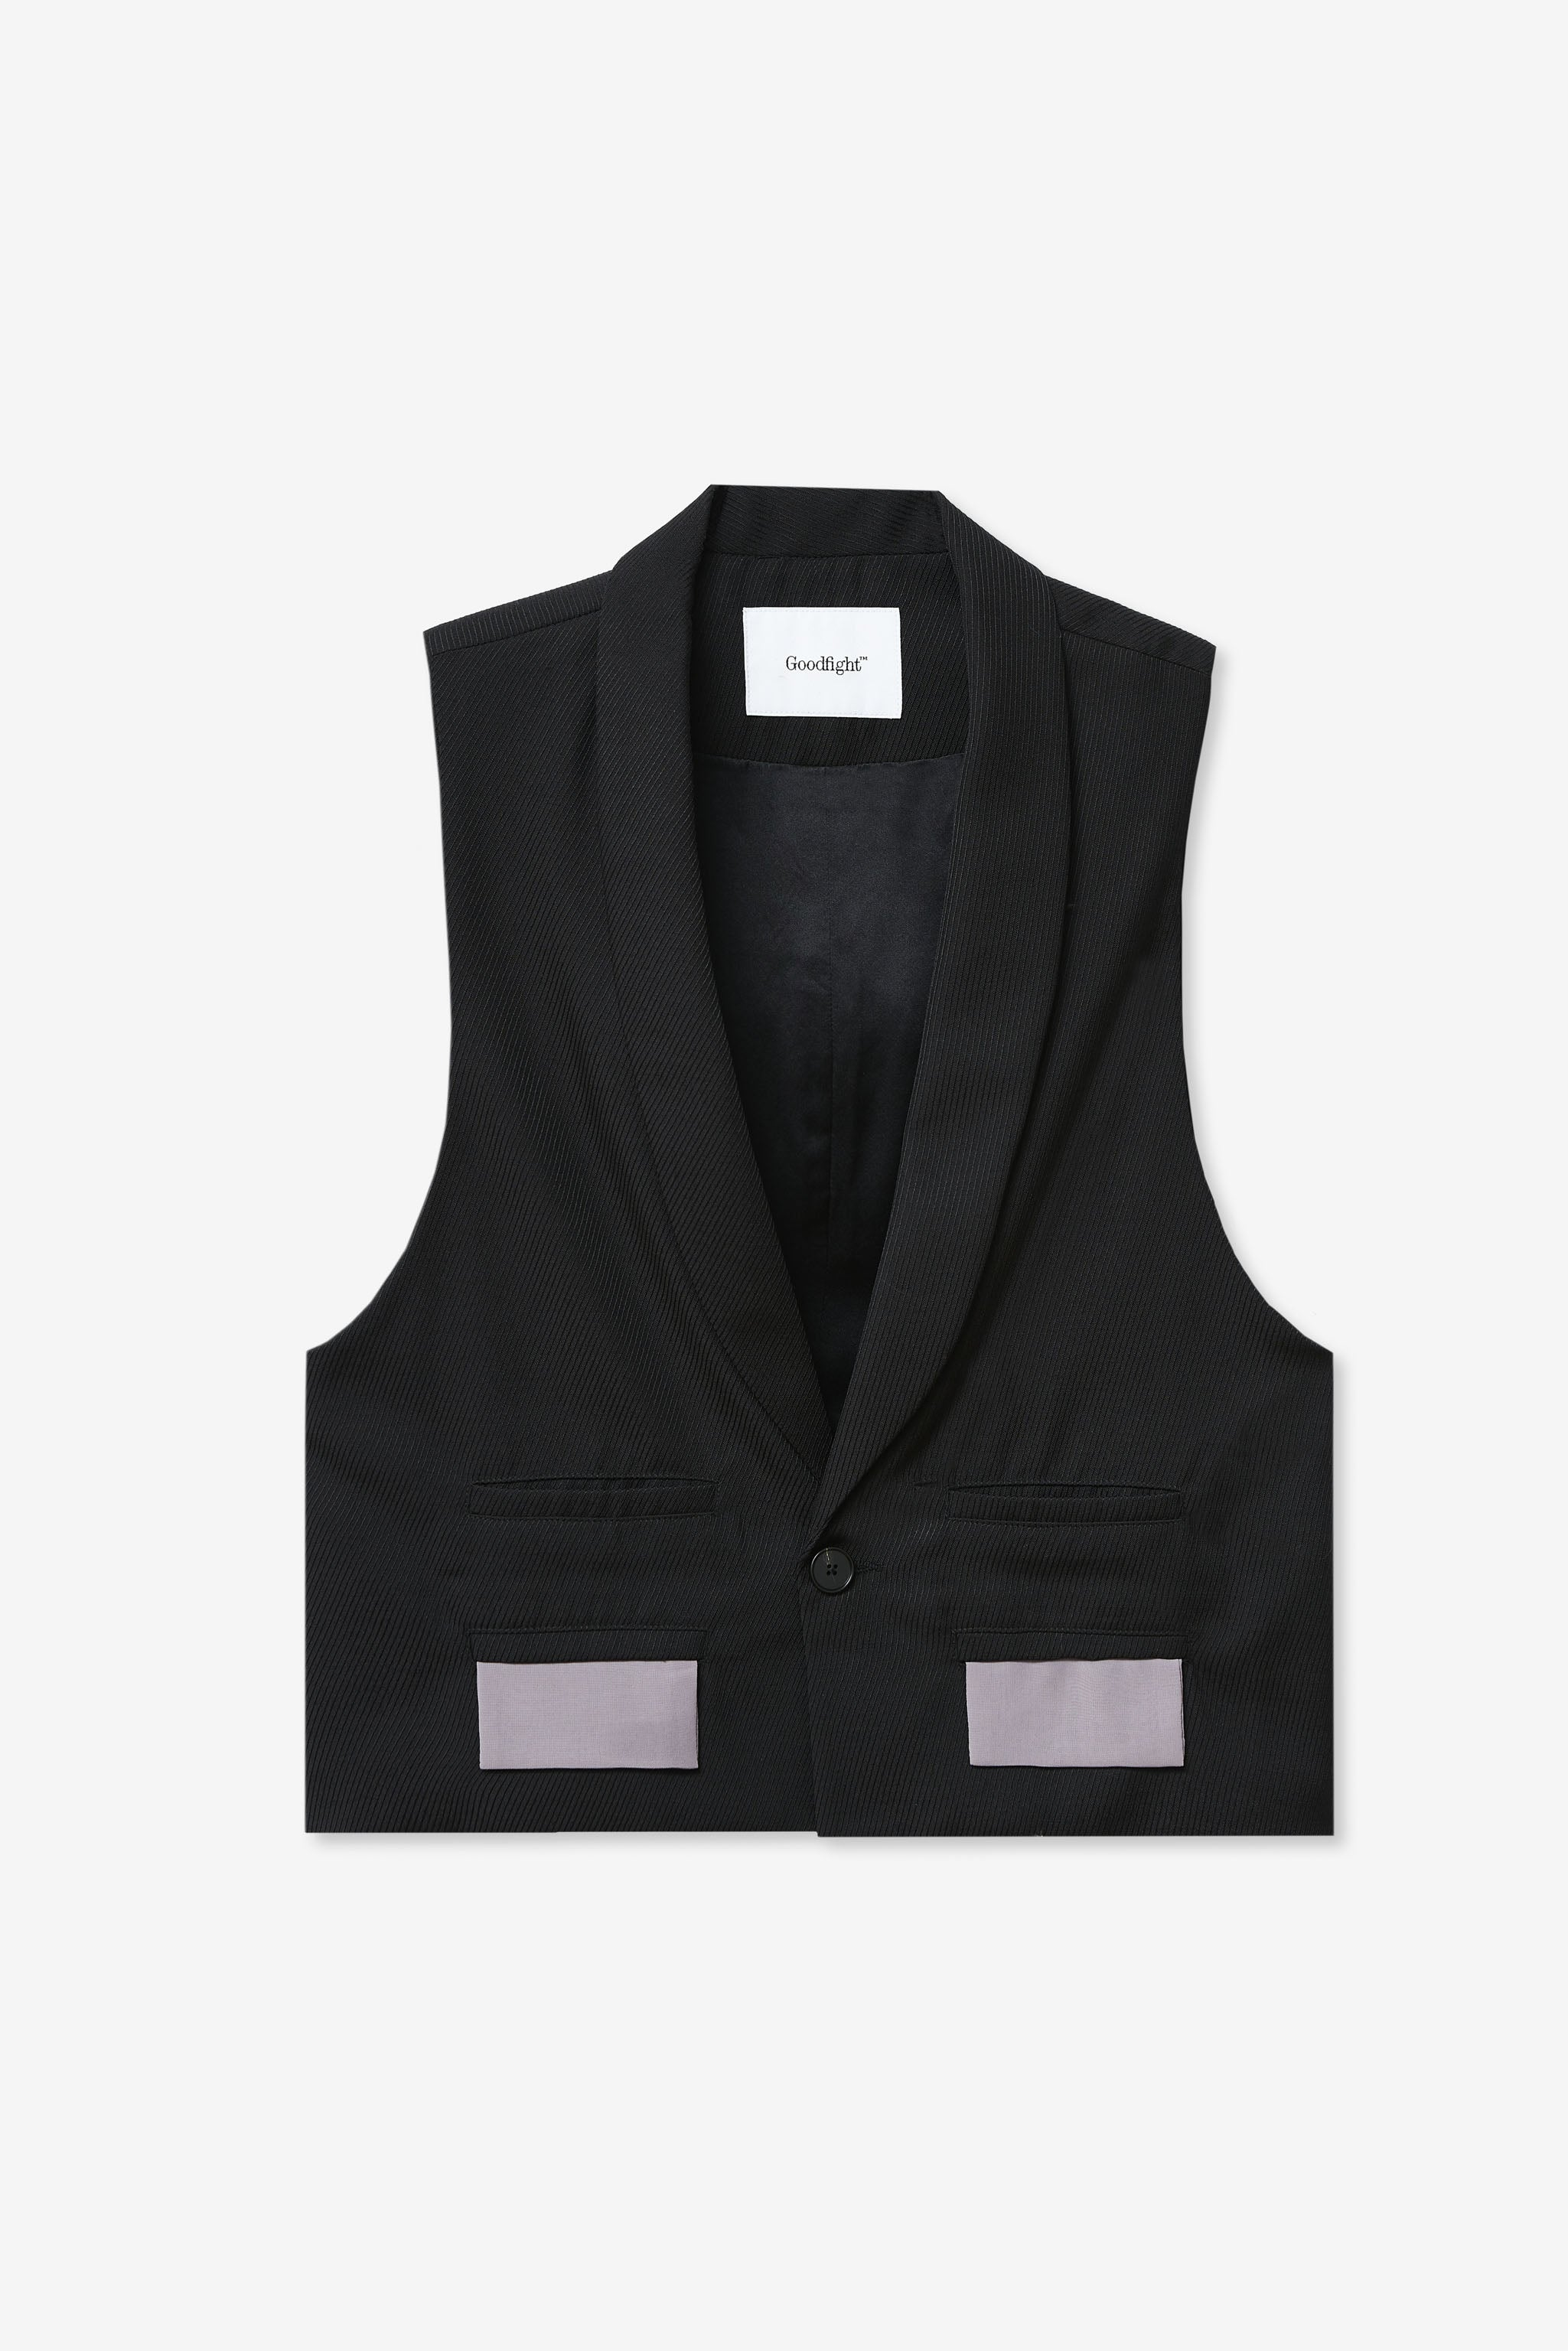 Goodfight Collar Chameleon Vest